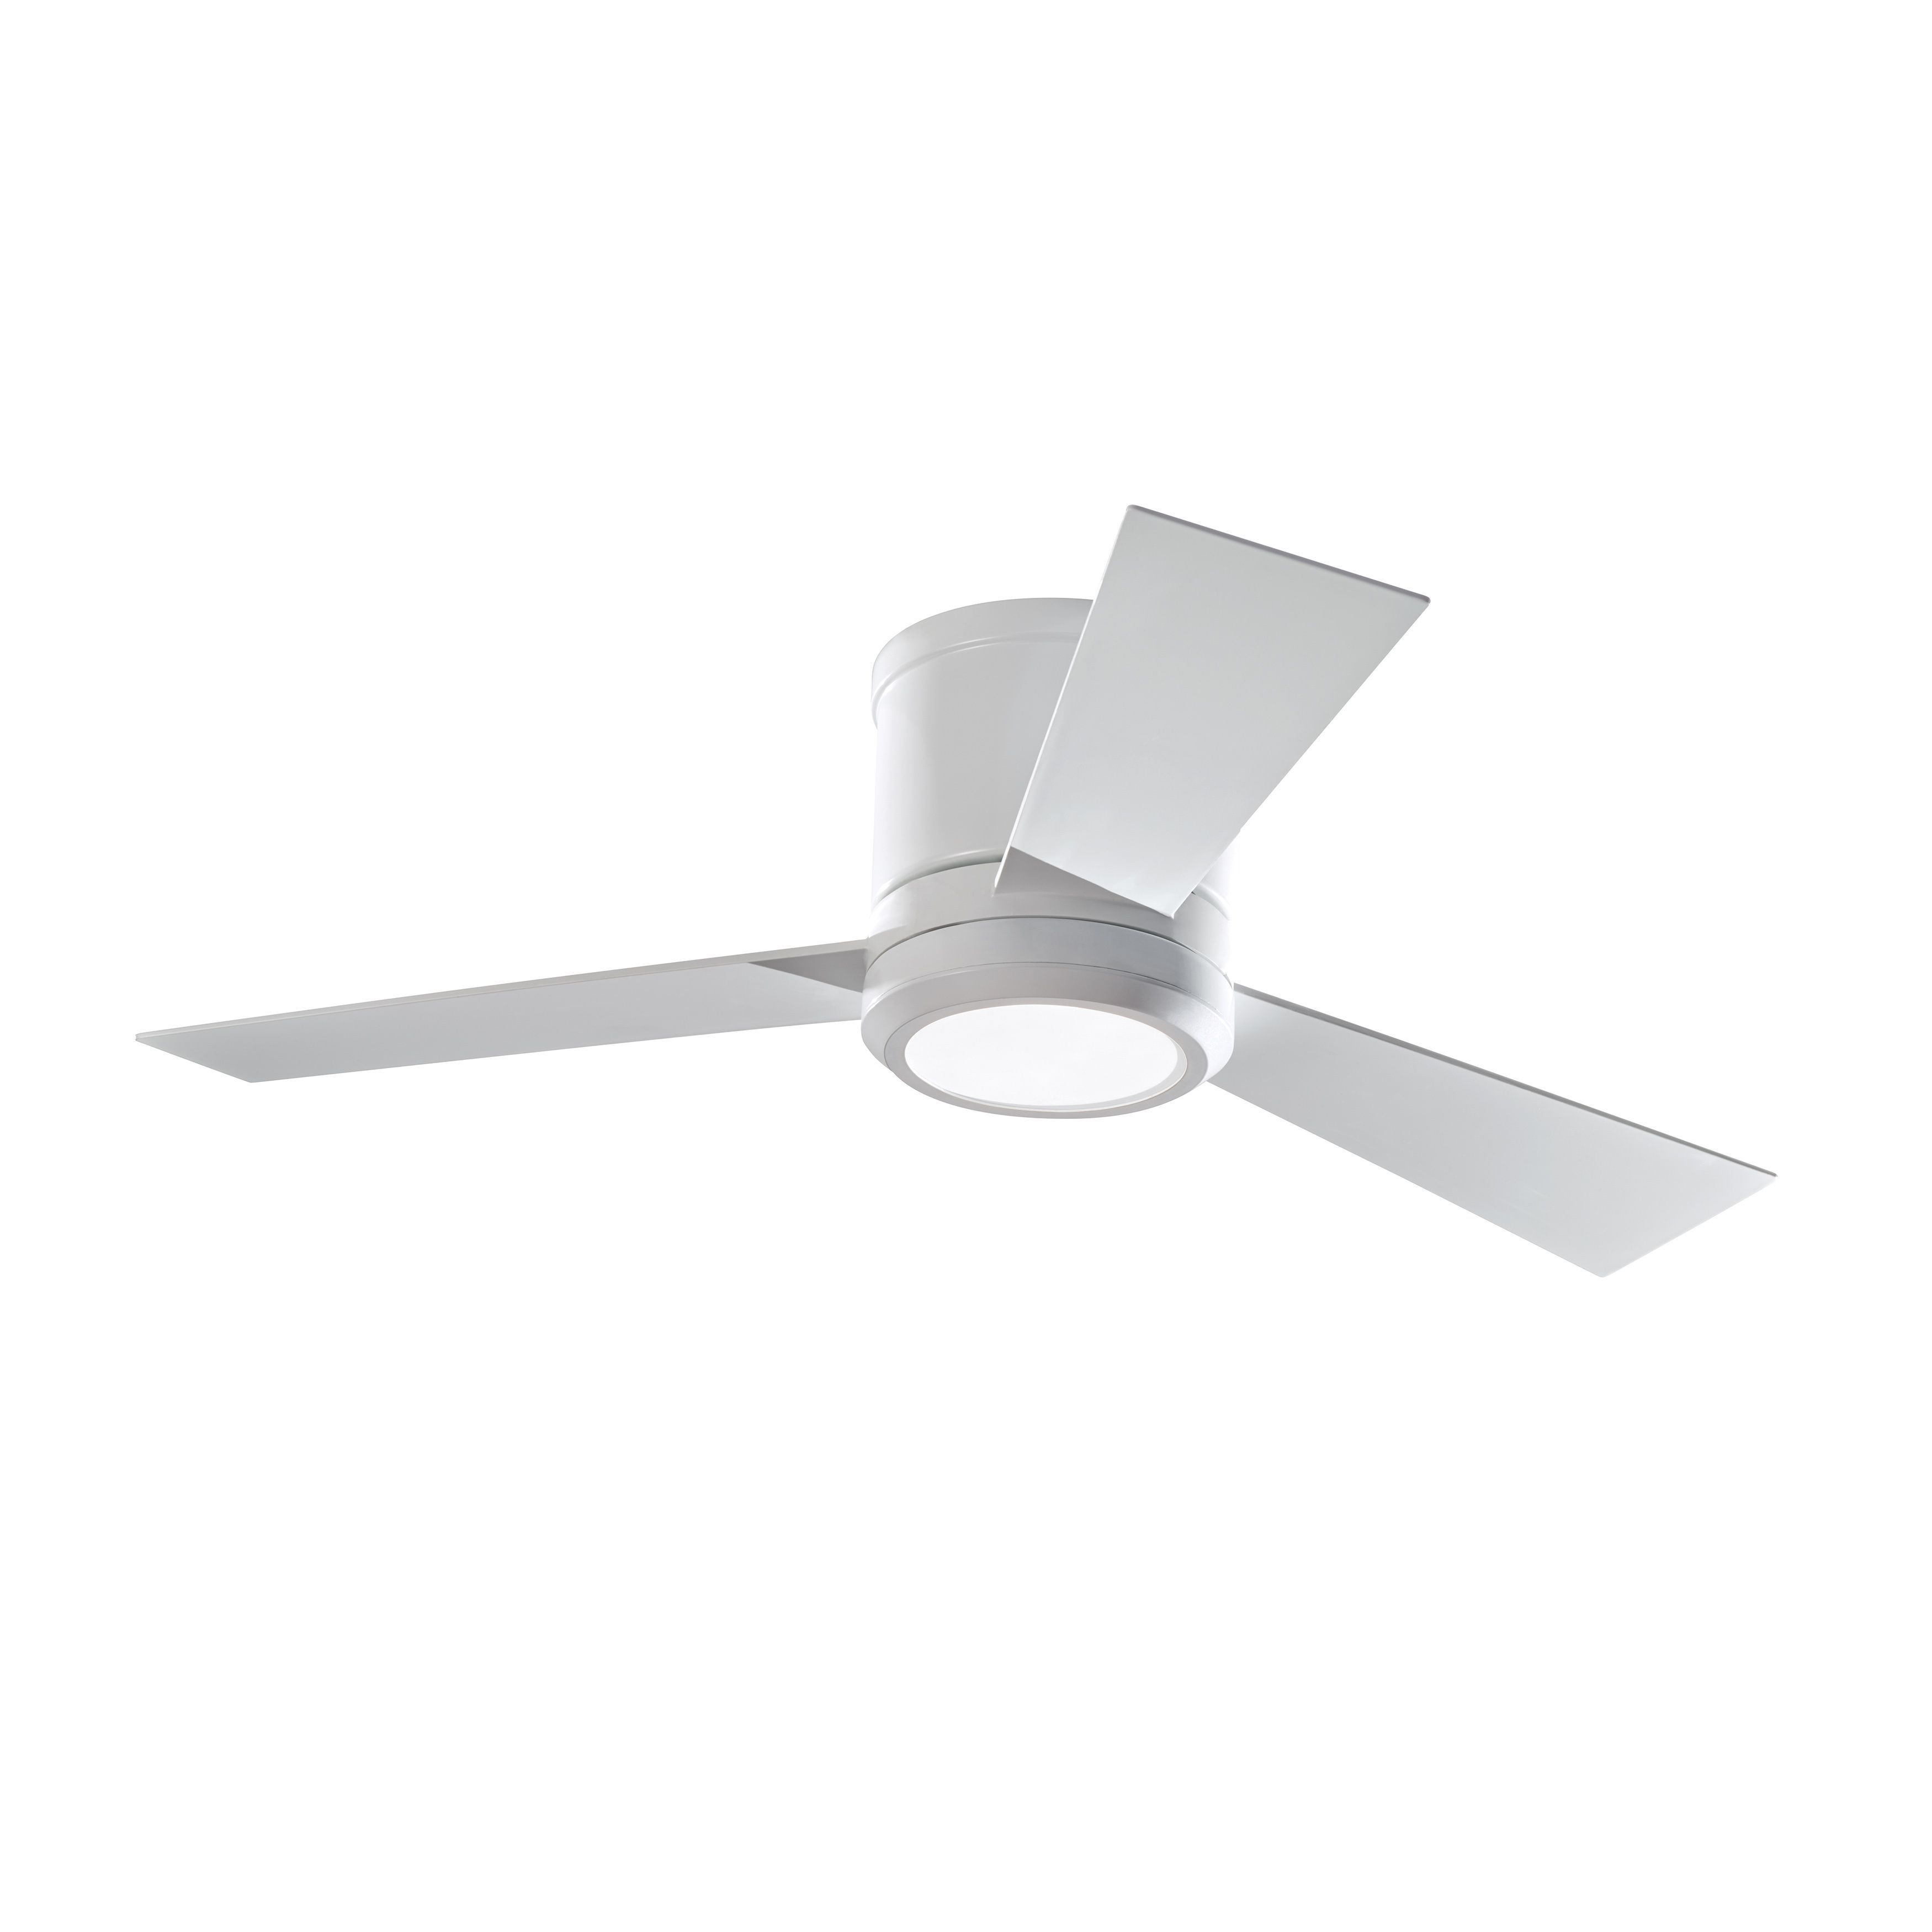 blades deka pm ceilings sets sale ceiling end deluxe series single blade sjkelectrical fan x d htm i